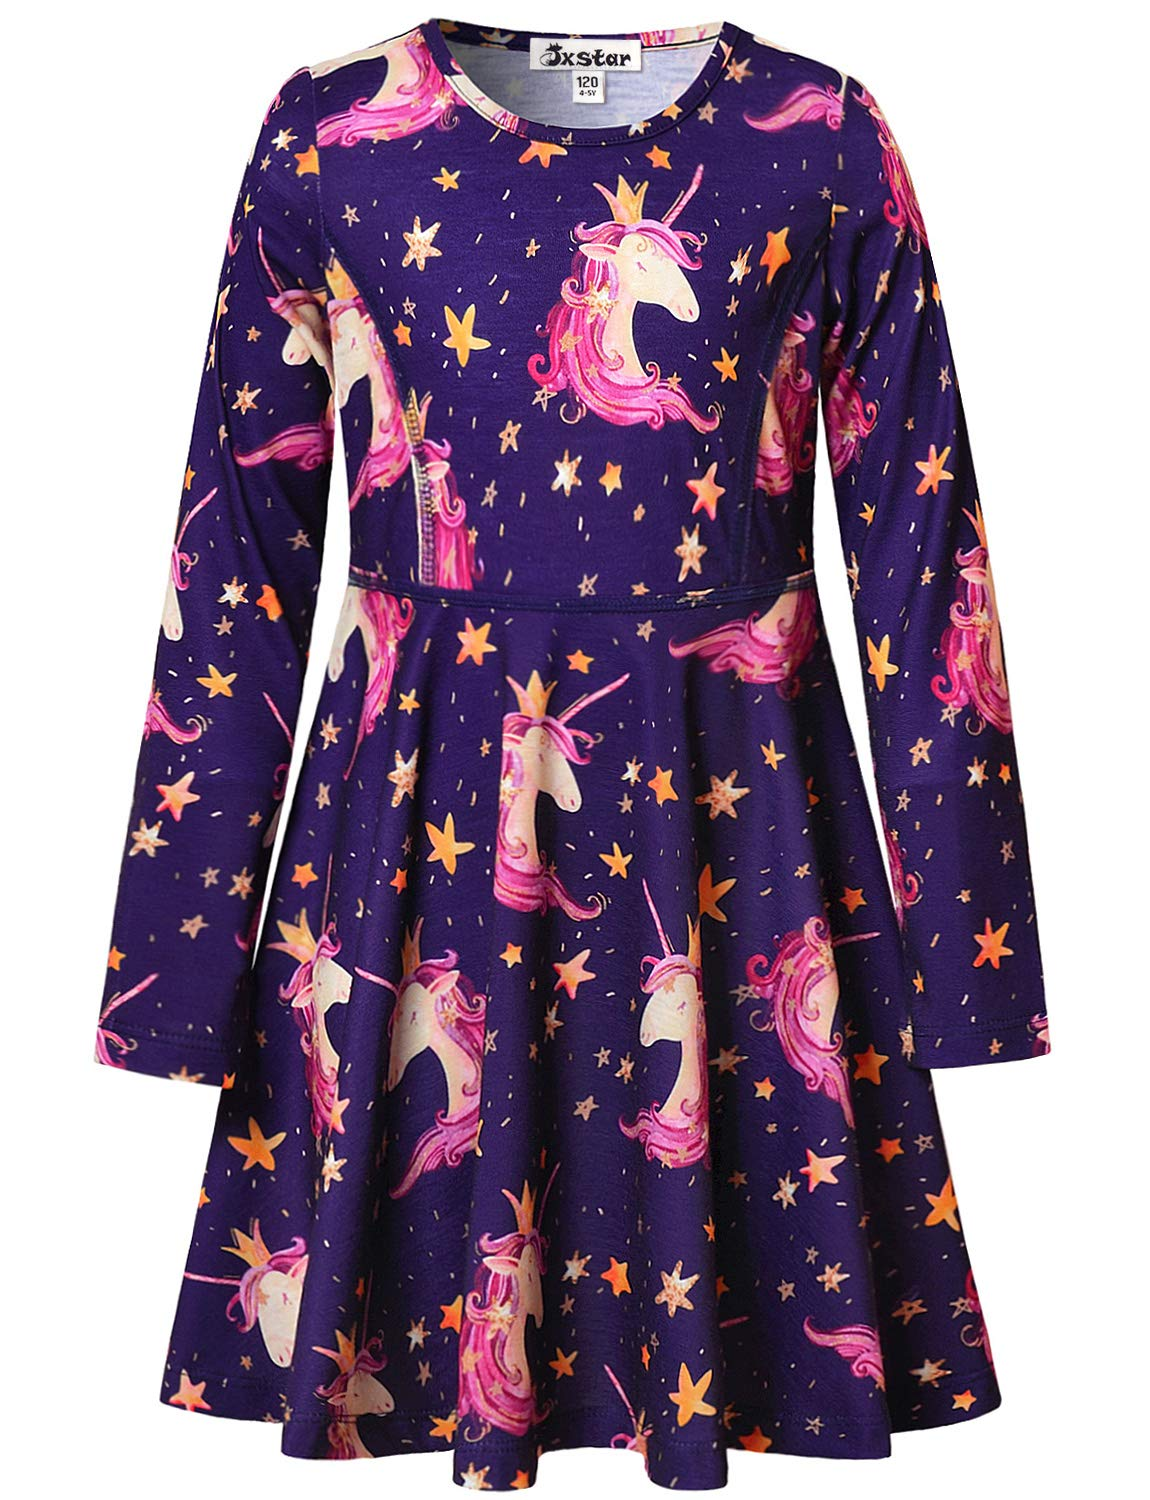 Unicorn Dresses Girls 7-16 Birthday Party Gift Kids Casual Cotton Dress